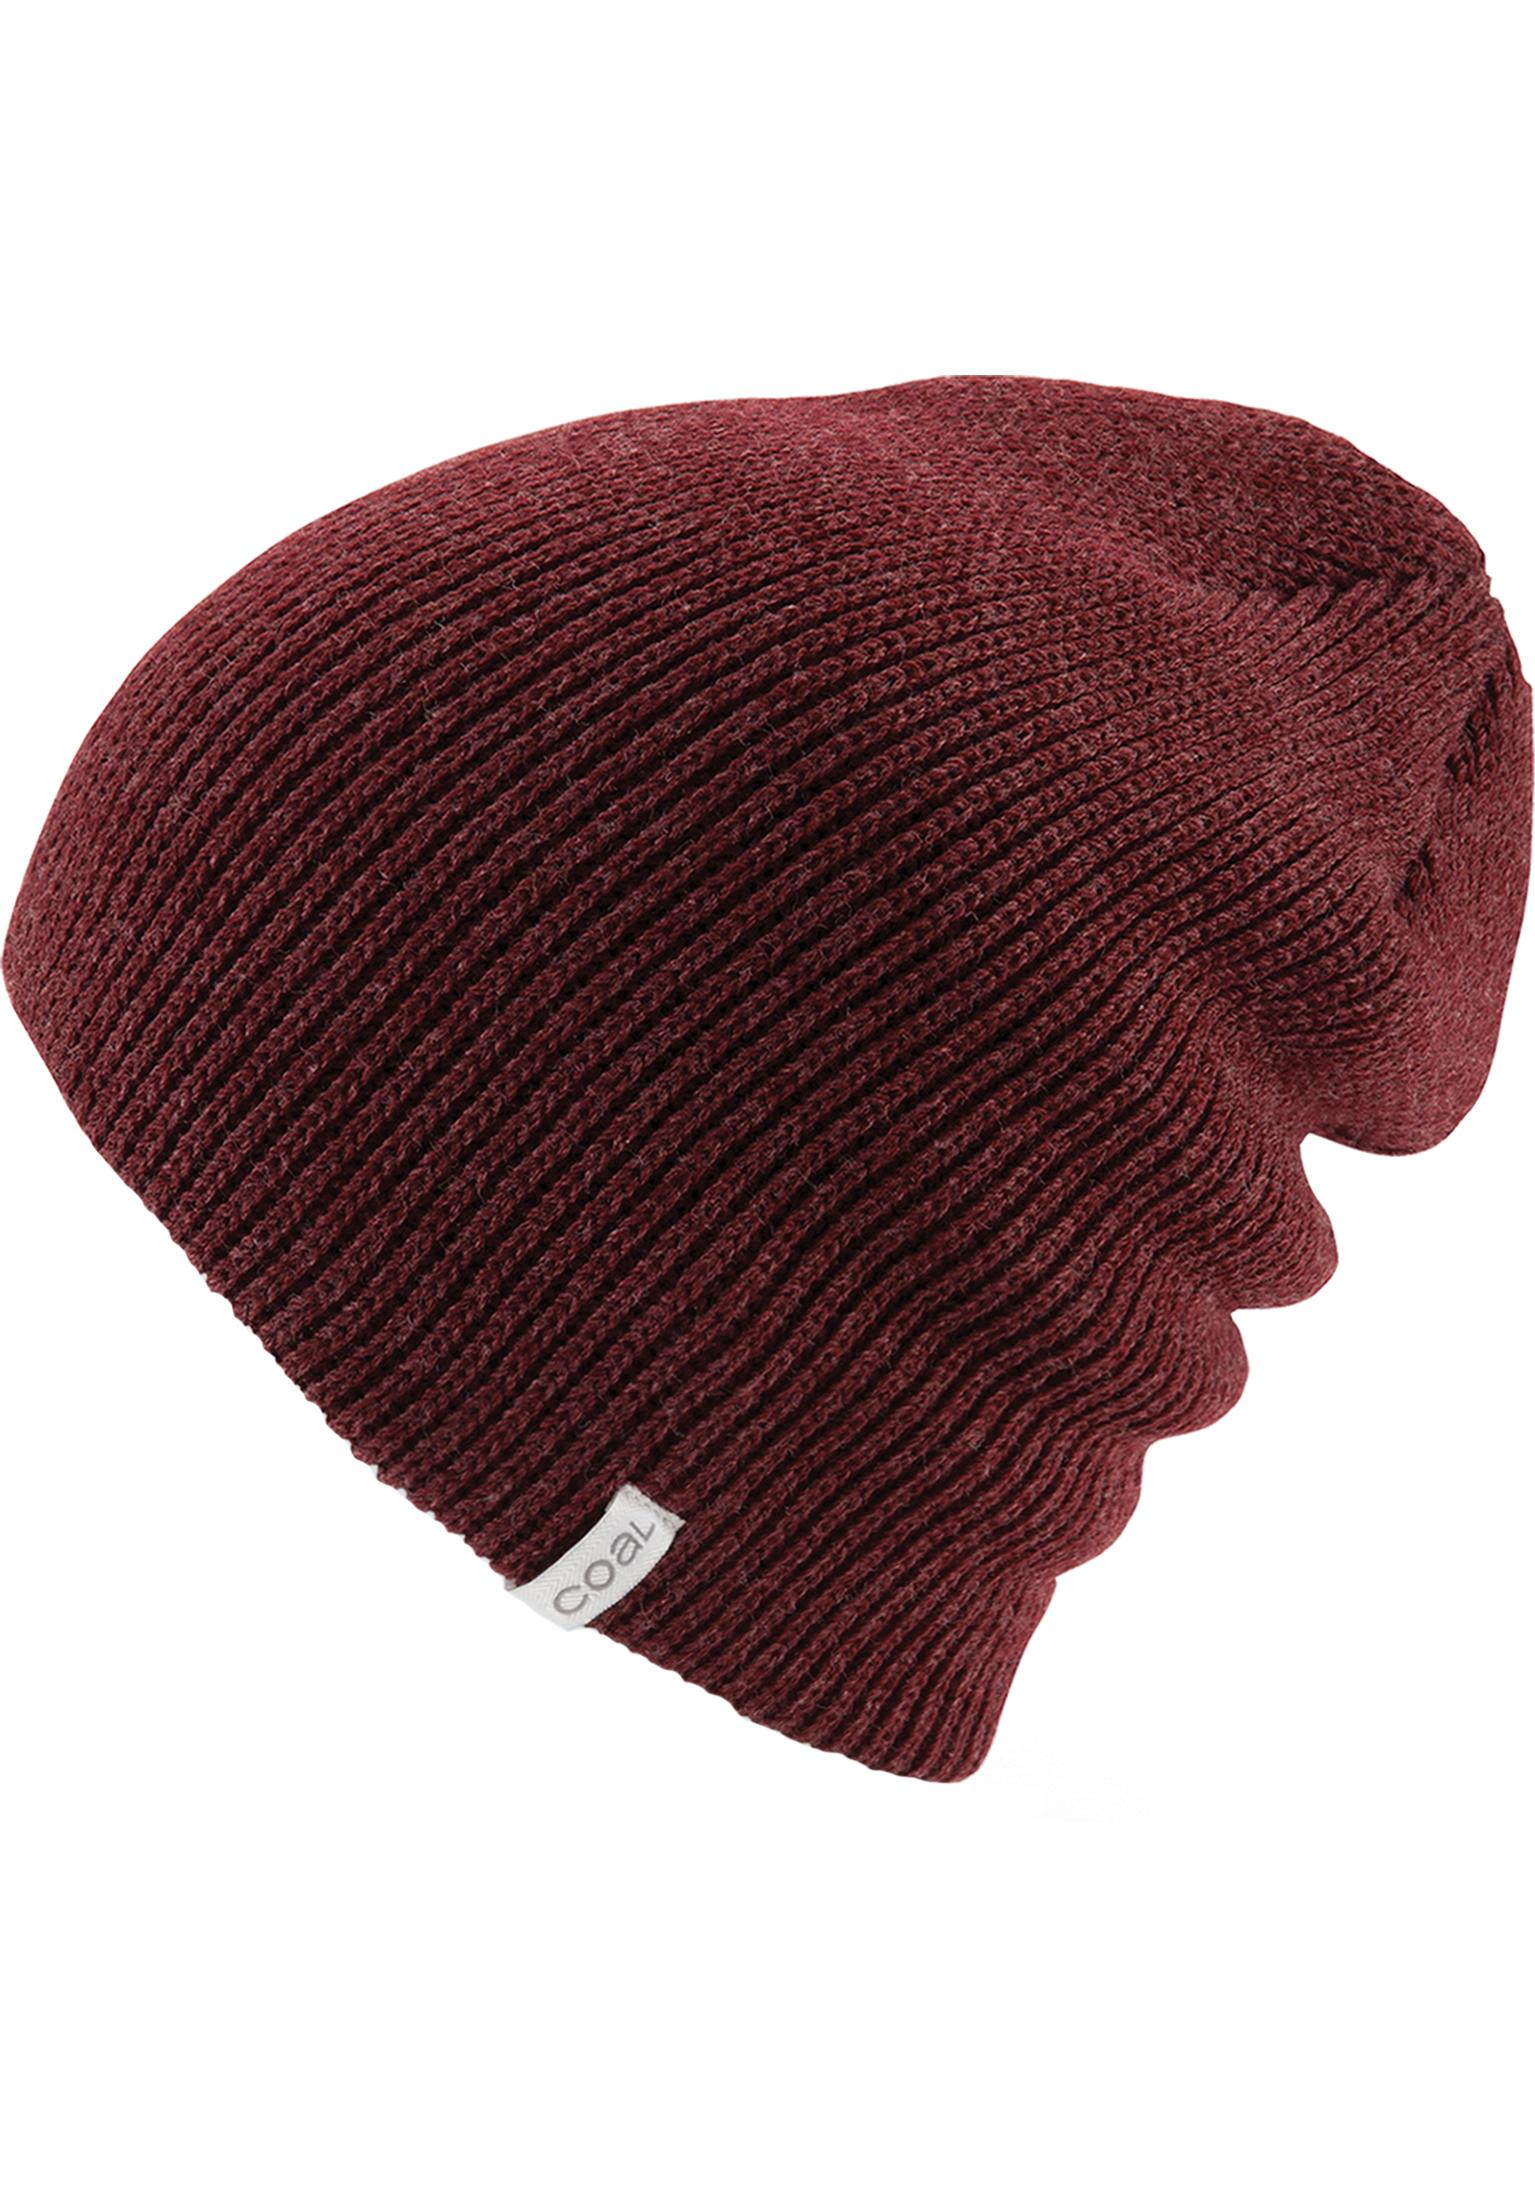 f8f314fe4d8 The Frena coal Beanies in heatherburgundy for Men